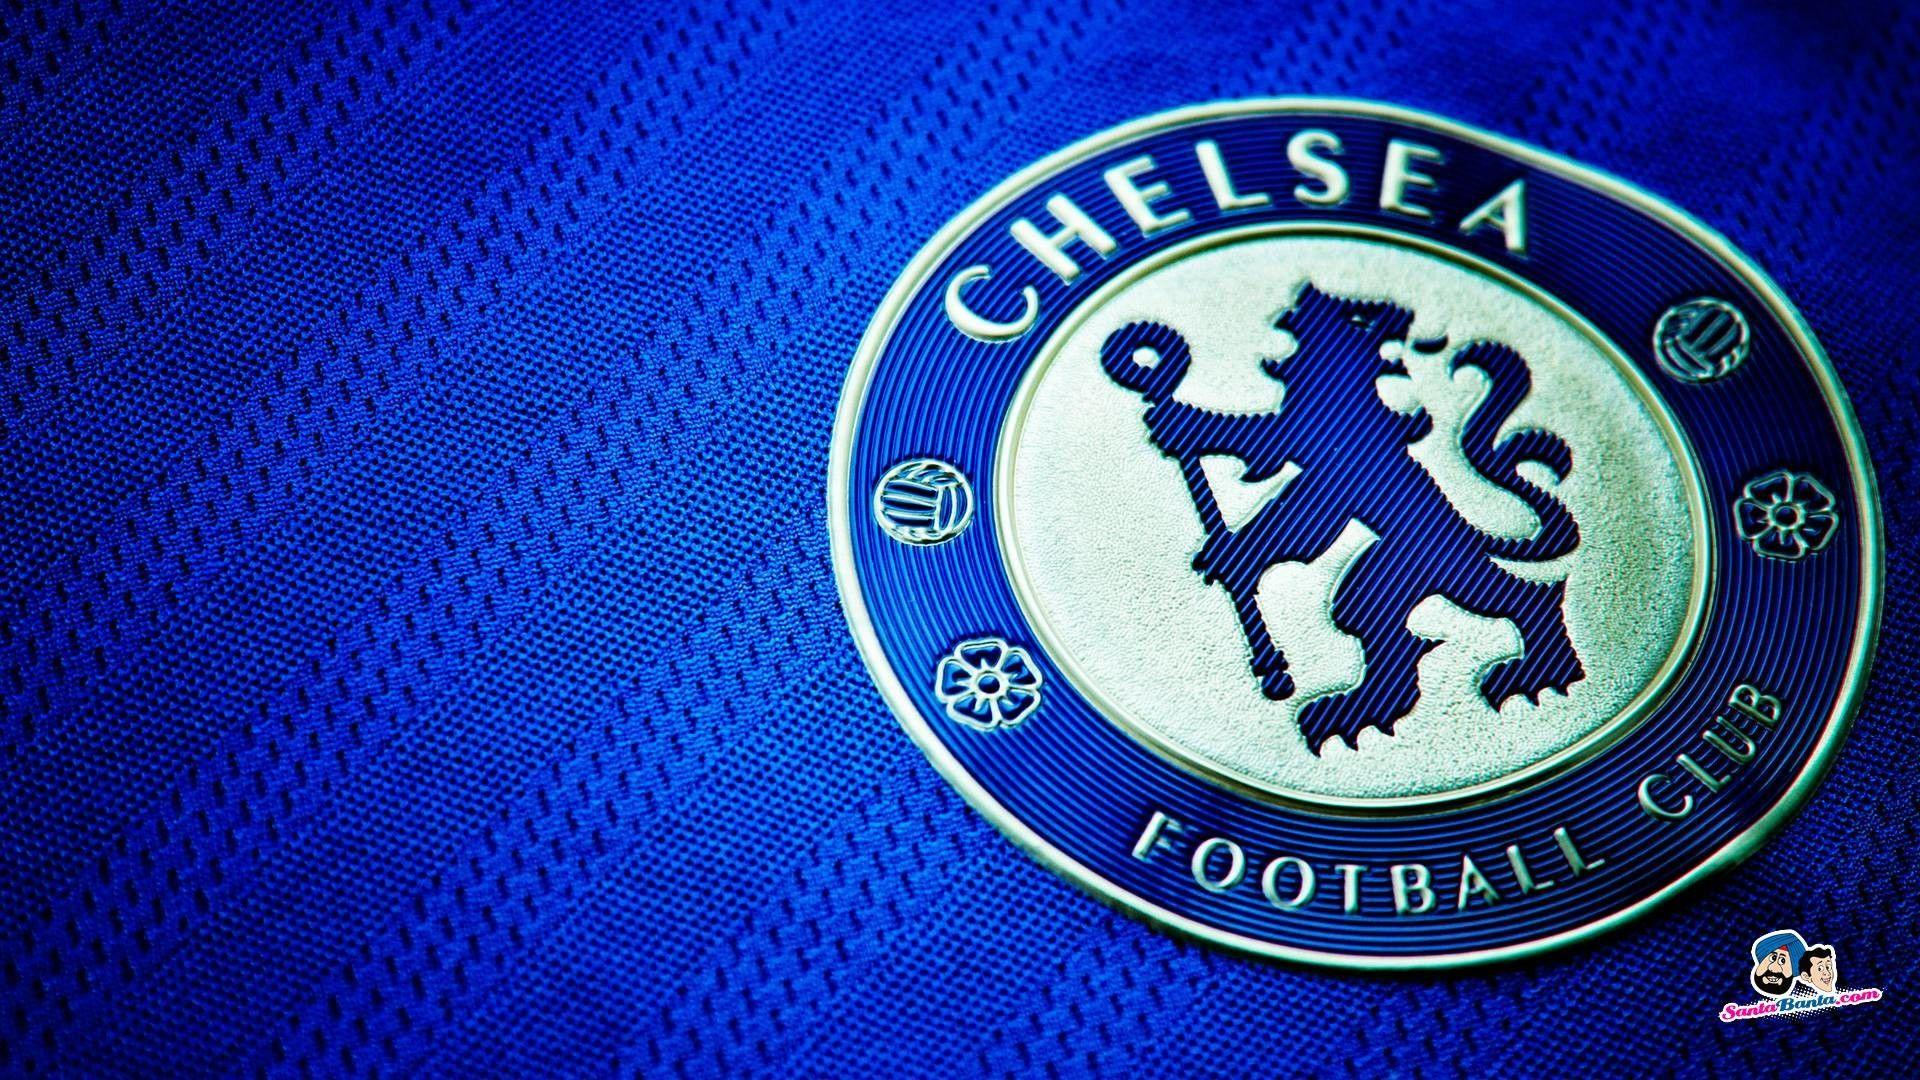 Chelsea F C Latest 2018 Wallpapers Wallpaper Cave